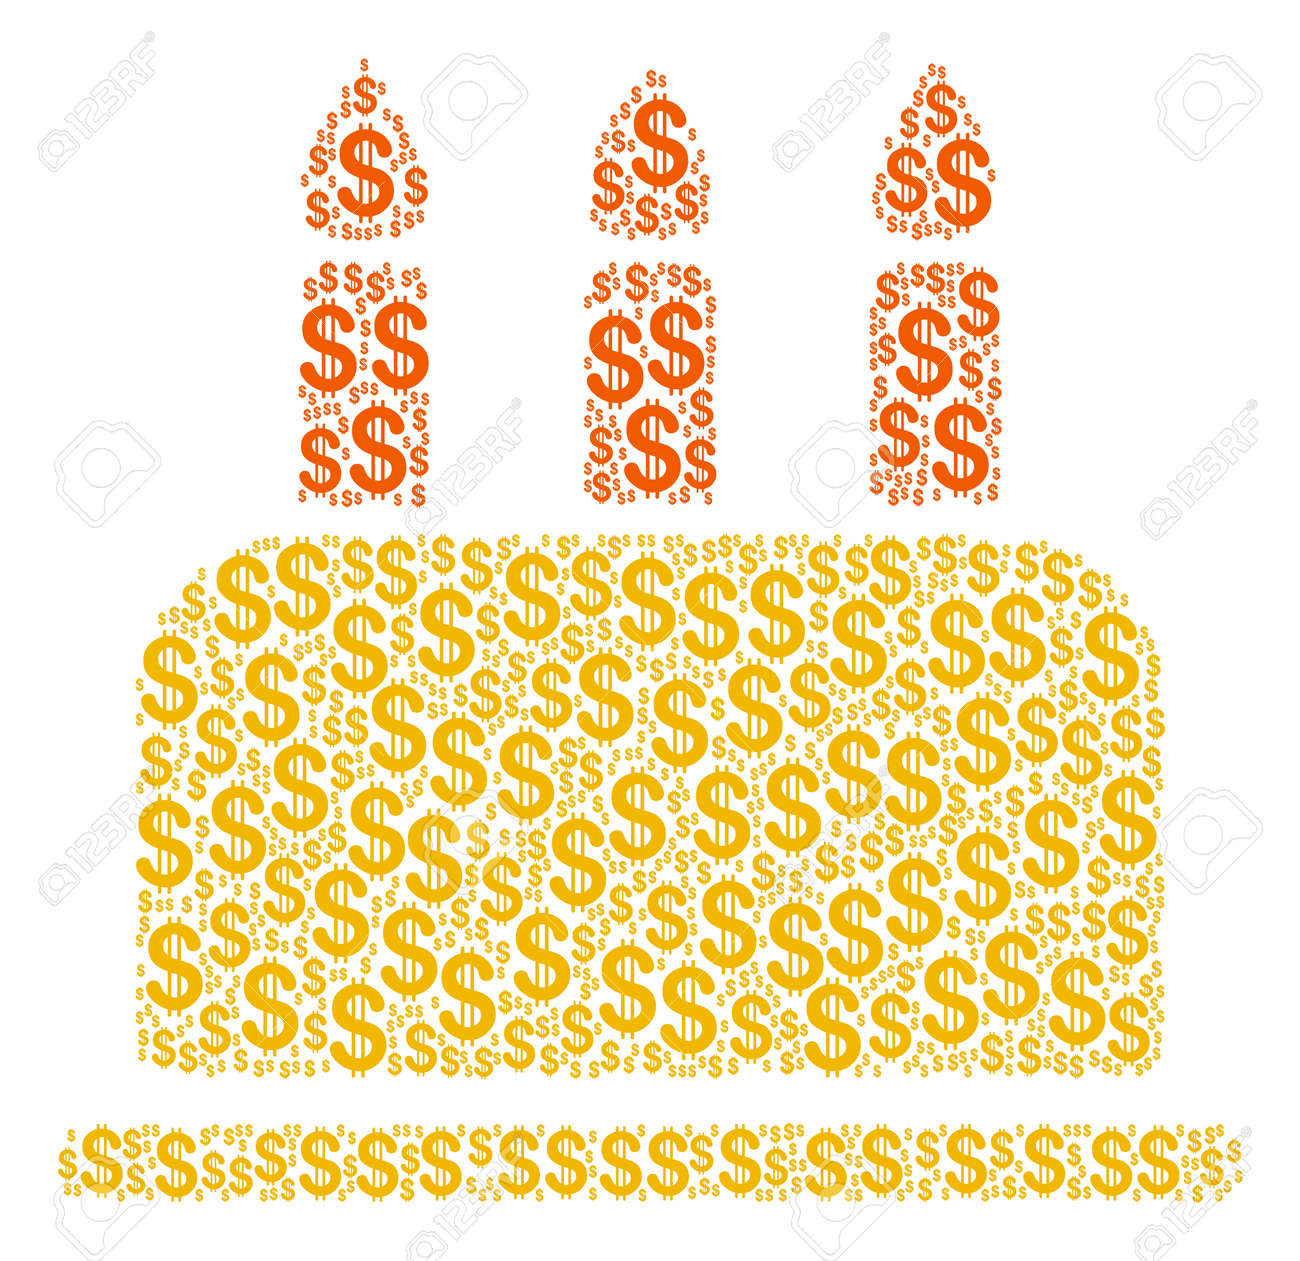 Birthday Cake Mosaic Of American Dollars Vector Dollar Currency Pictograms Are United Into